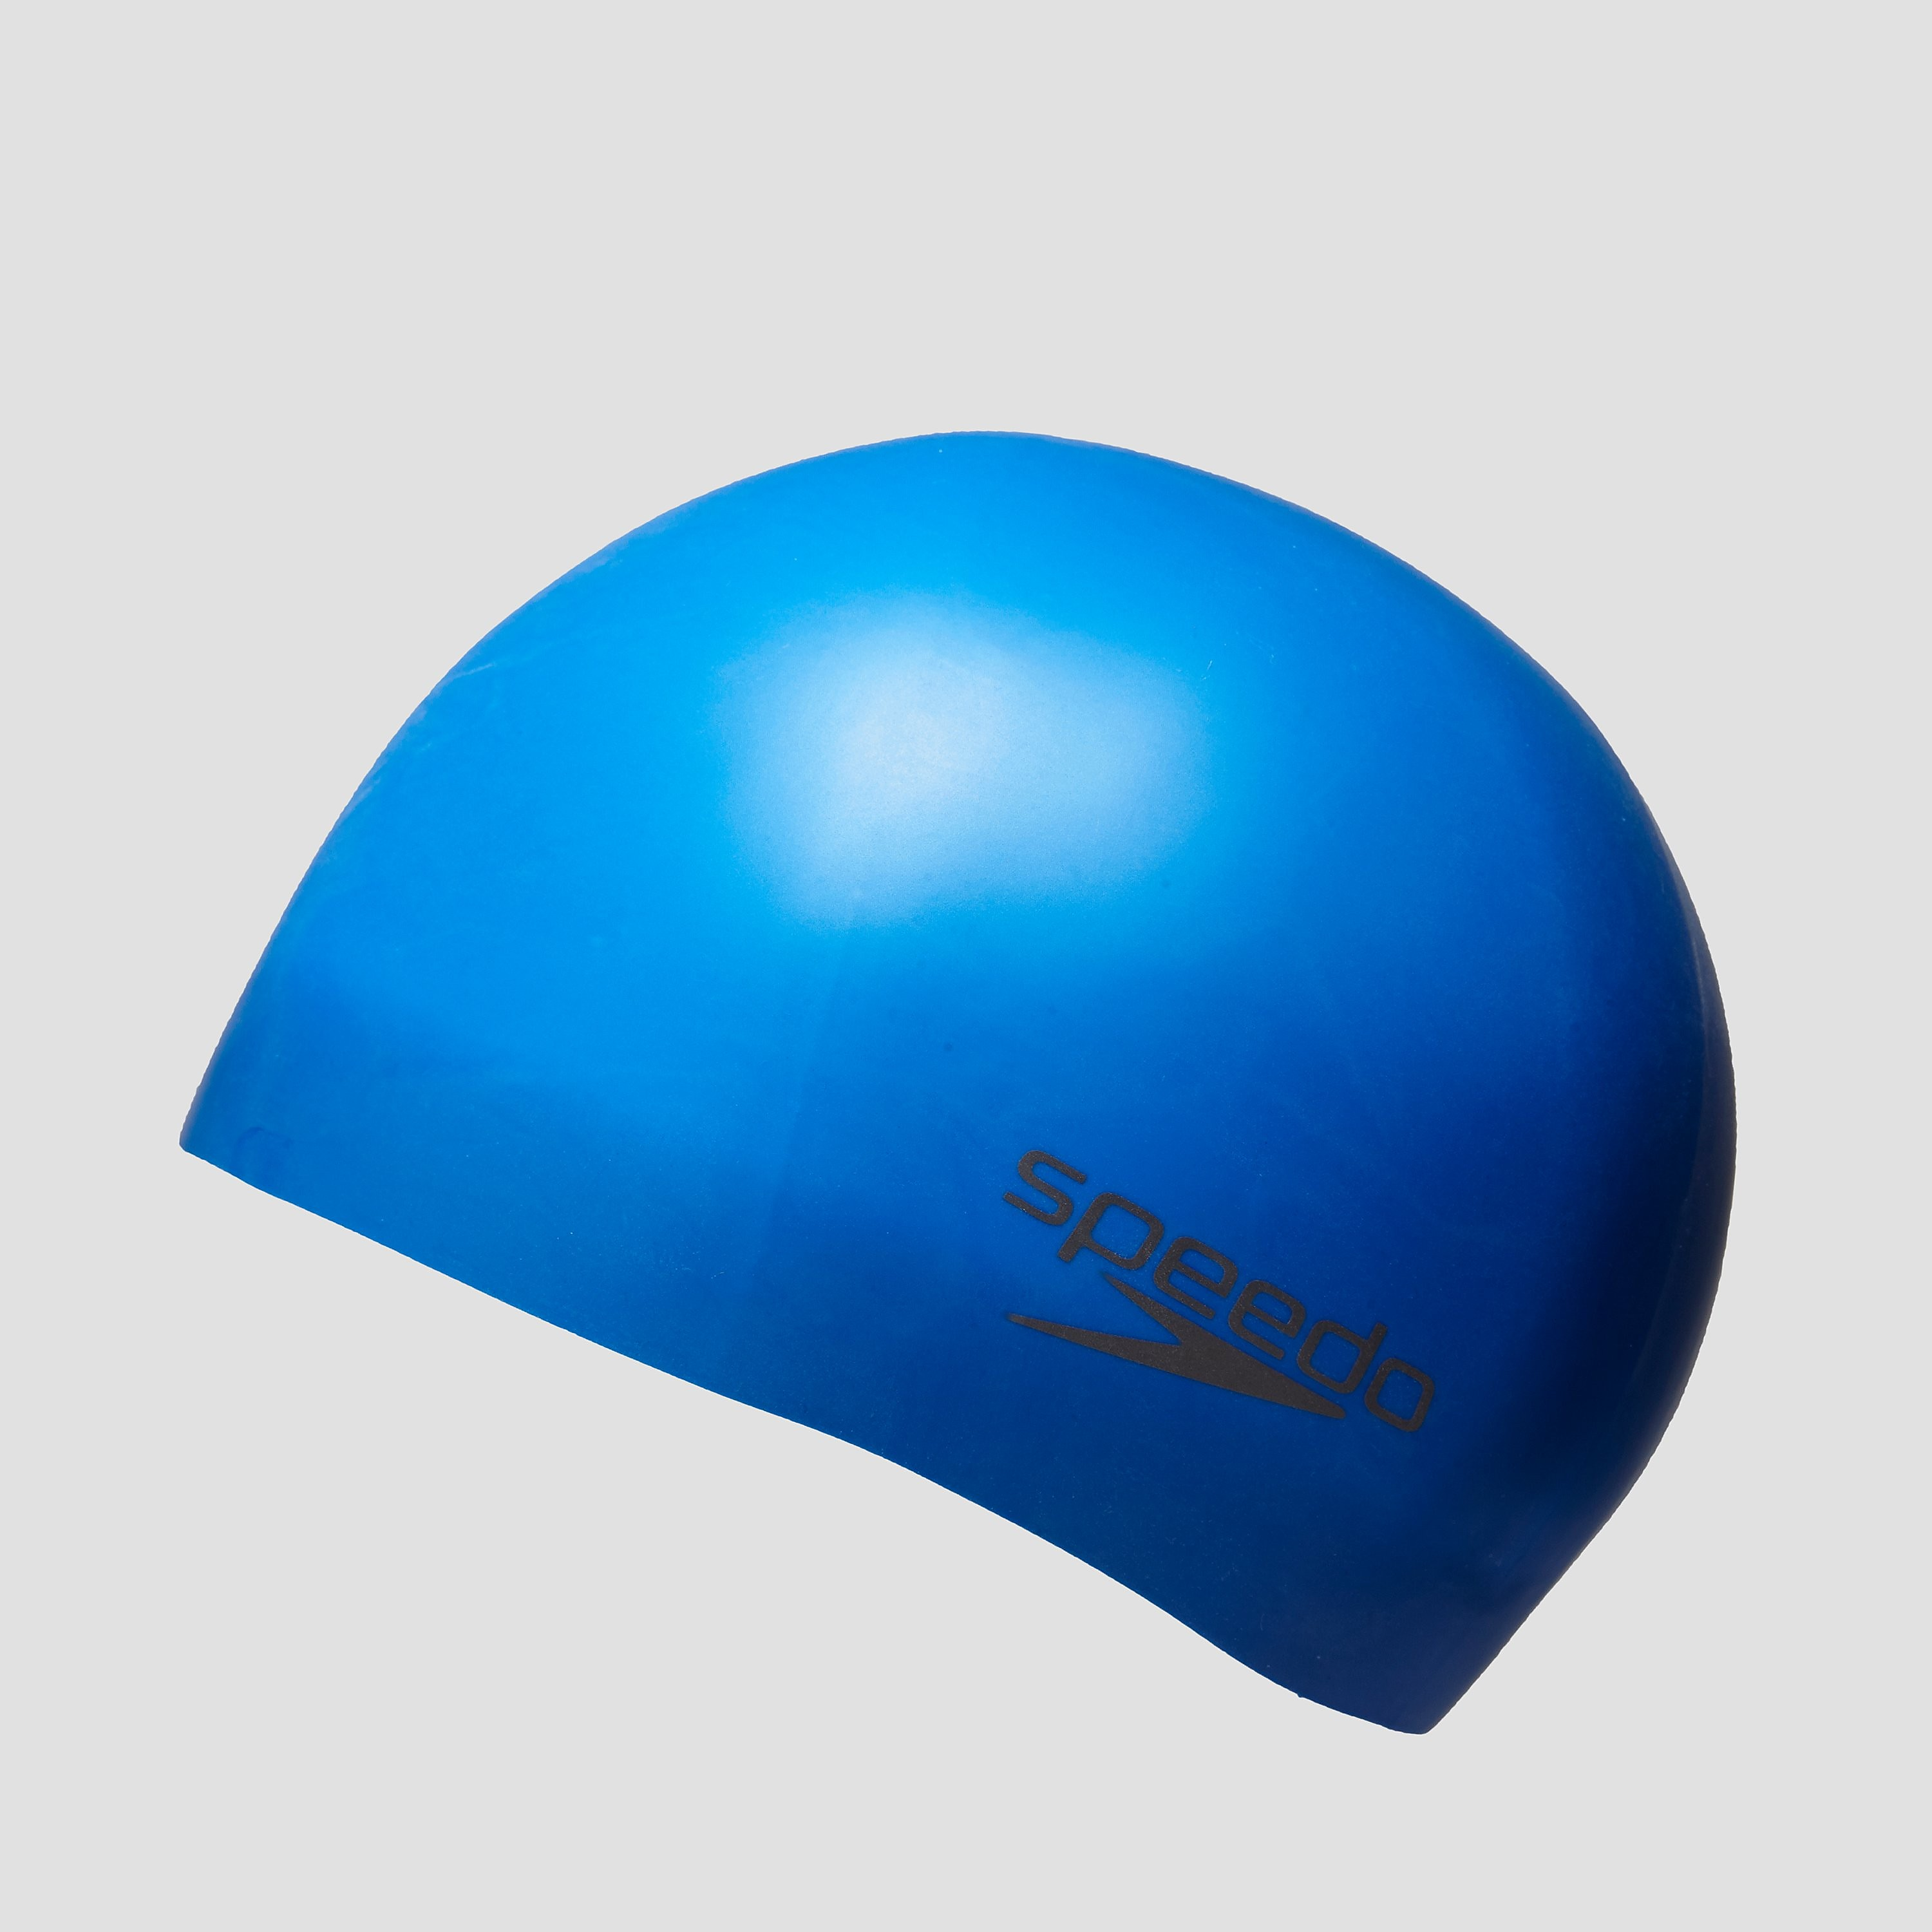 Speedo Plain Moulded Silicone Adult Cap